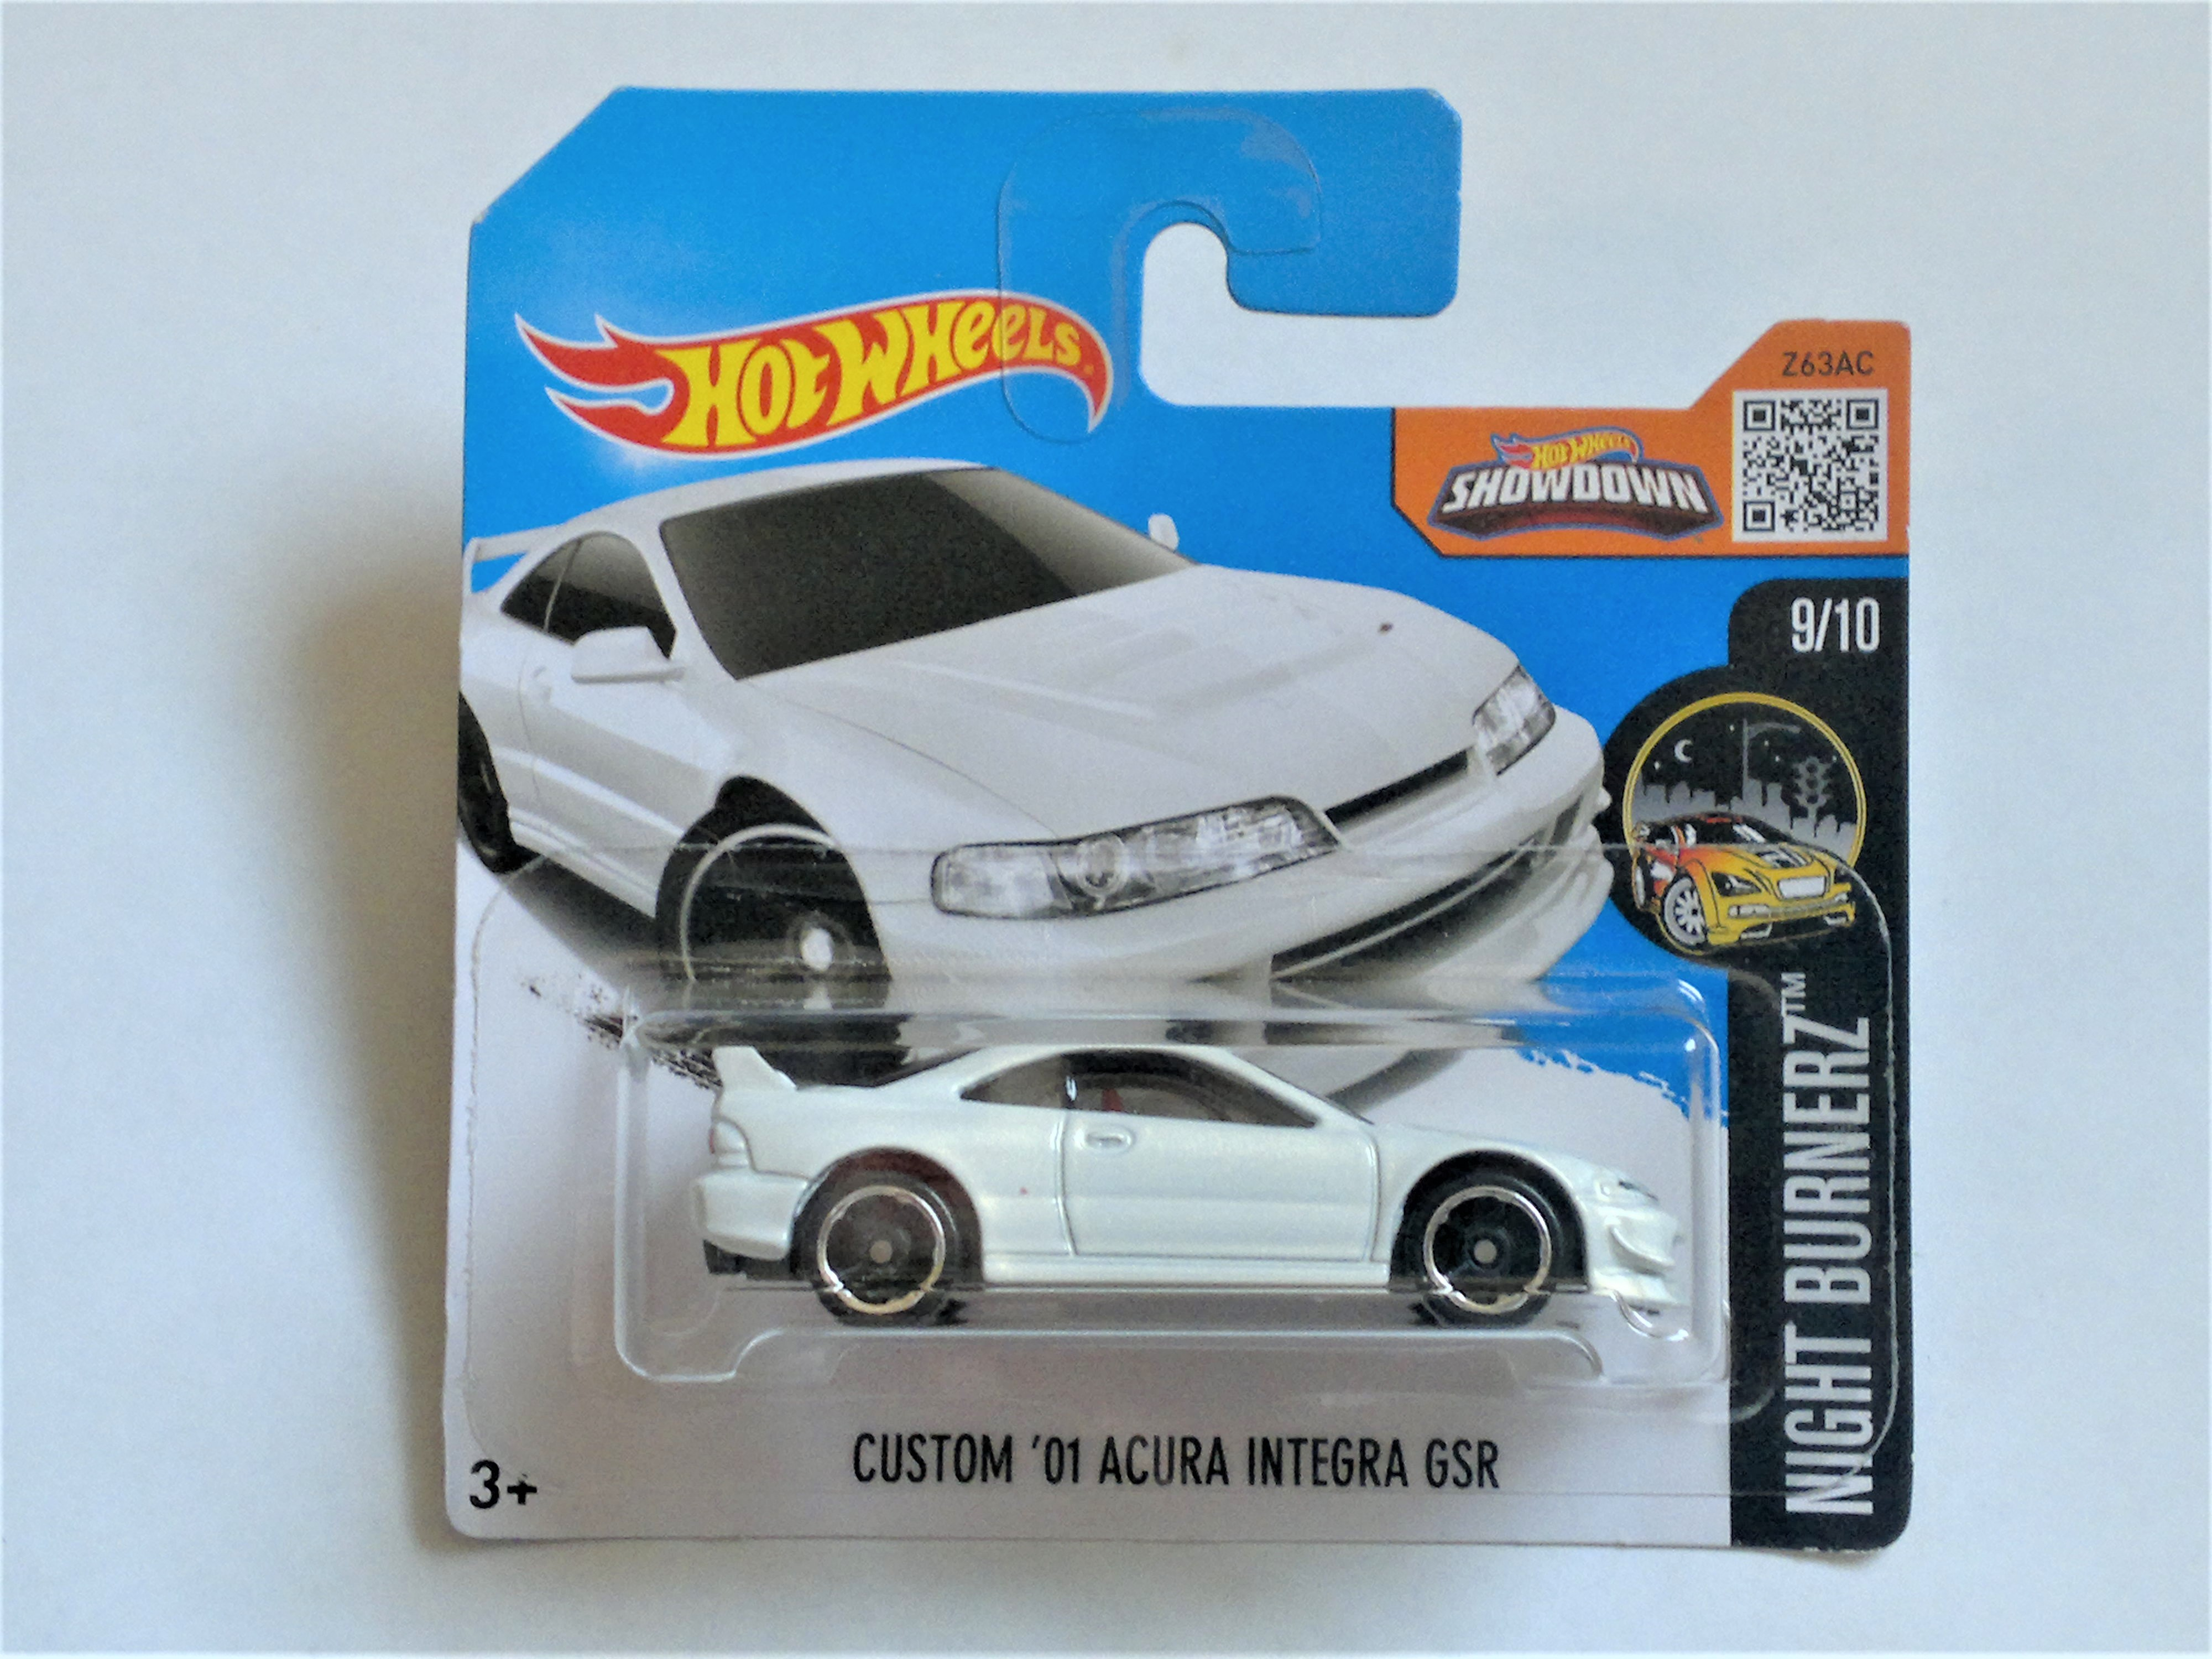 Hot Wheels 2001 Acura Custom Integra Gsr Coupe 9 10 Nightburnerz White Contemporary Manufacture Diecast Toy Vehicles